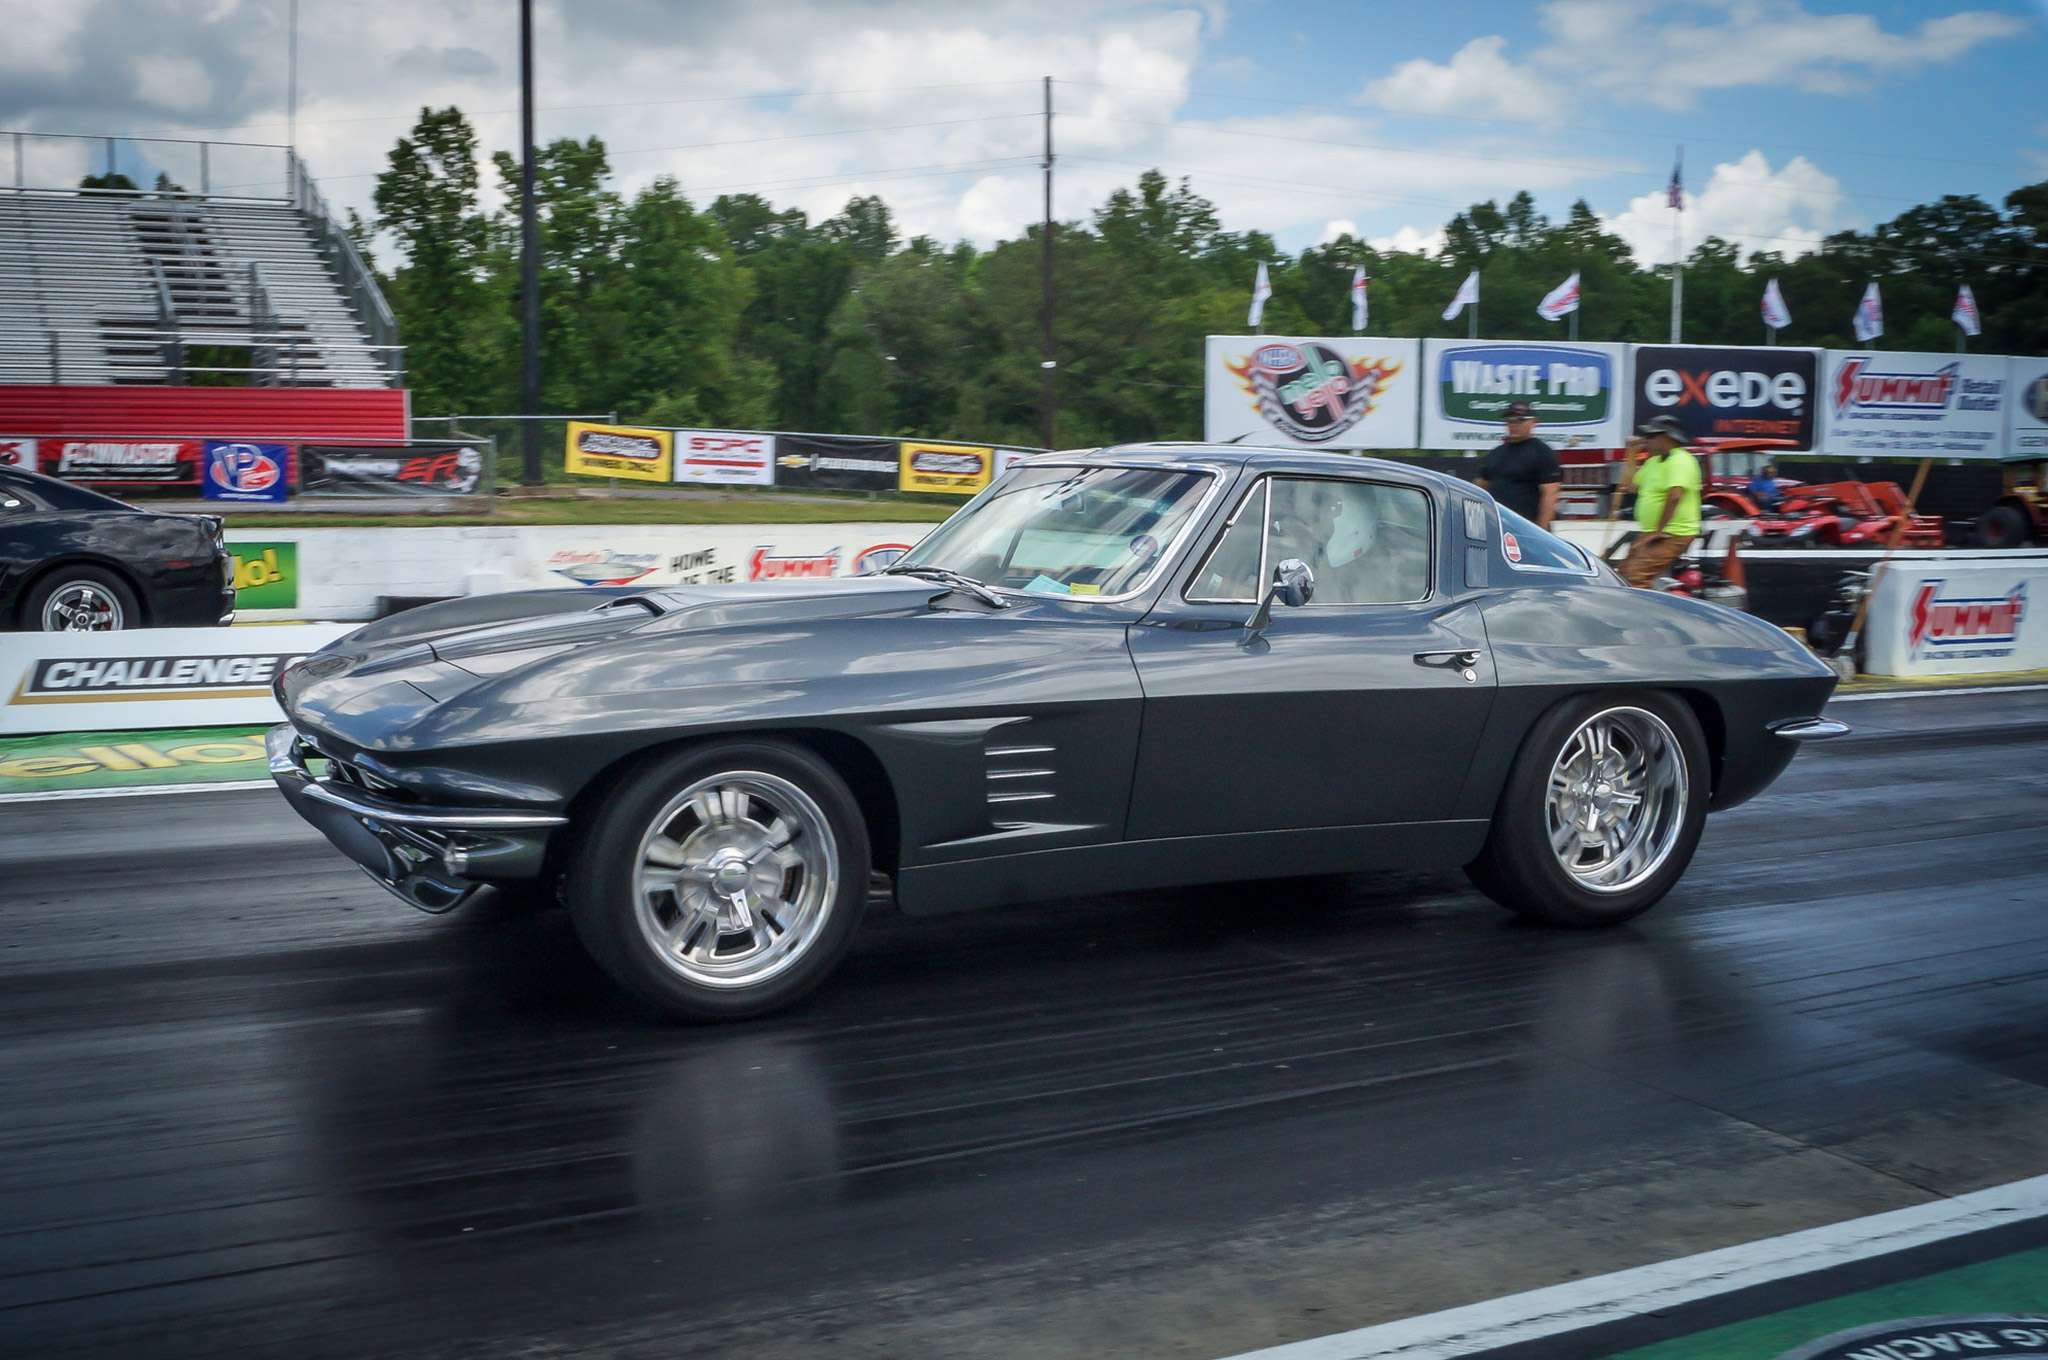 Jere Moore was competing in True Street with his '64 Corvette he calls Lydia. Keen eyes might notice a slight flare to the fenders, but they likely can't see that Jere has a hot-cammed, 480hp LS3 crate engine backed by a TCI 6X six-speed automatic transmission underneath the Corvette's skin. Jere has the chassis set up so he can just stab the throttle and go—to the tune of high 11s in the quarter-mile—all while enjoying his luxuriously appointed custom interior.